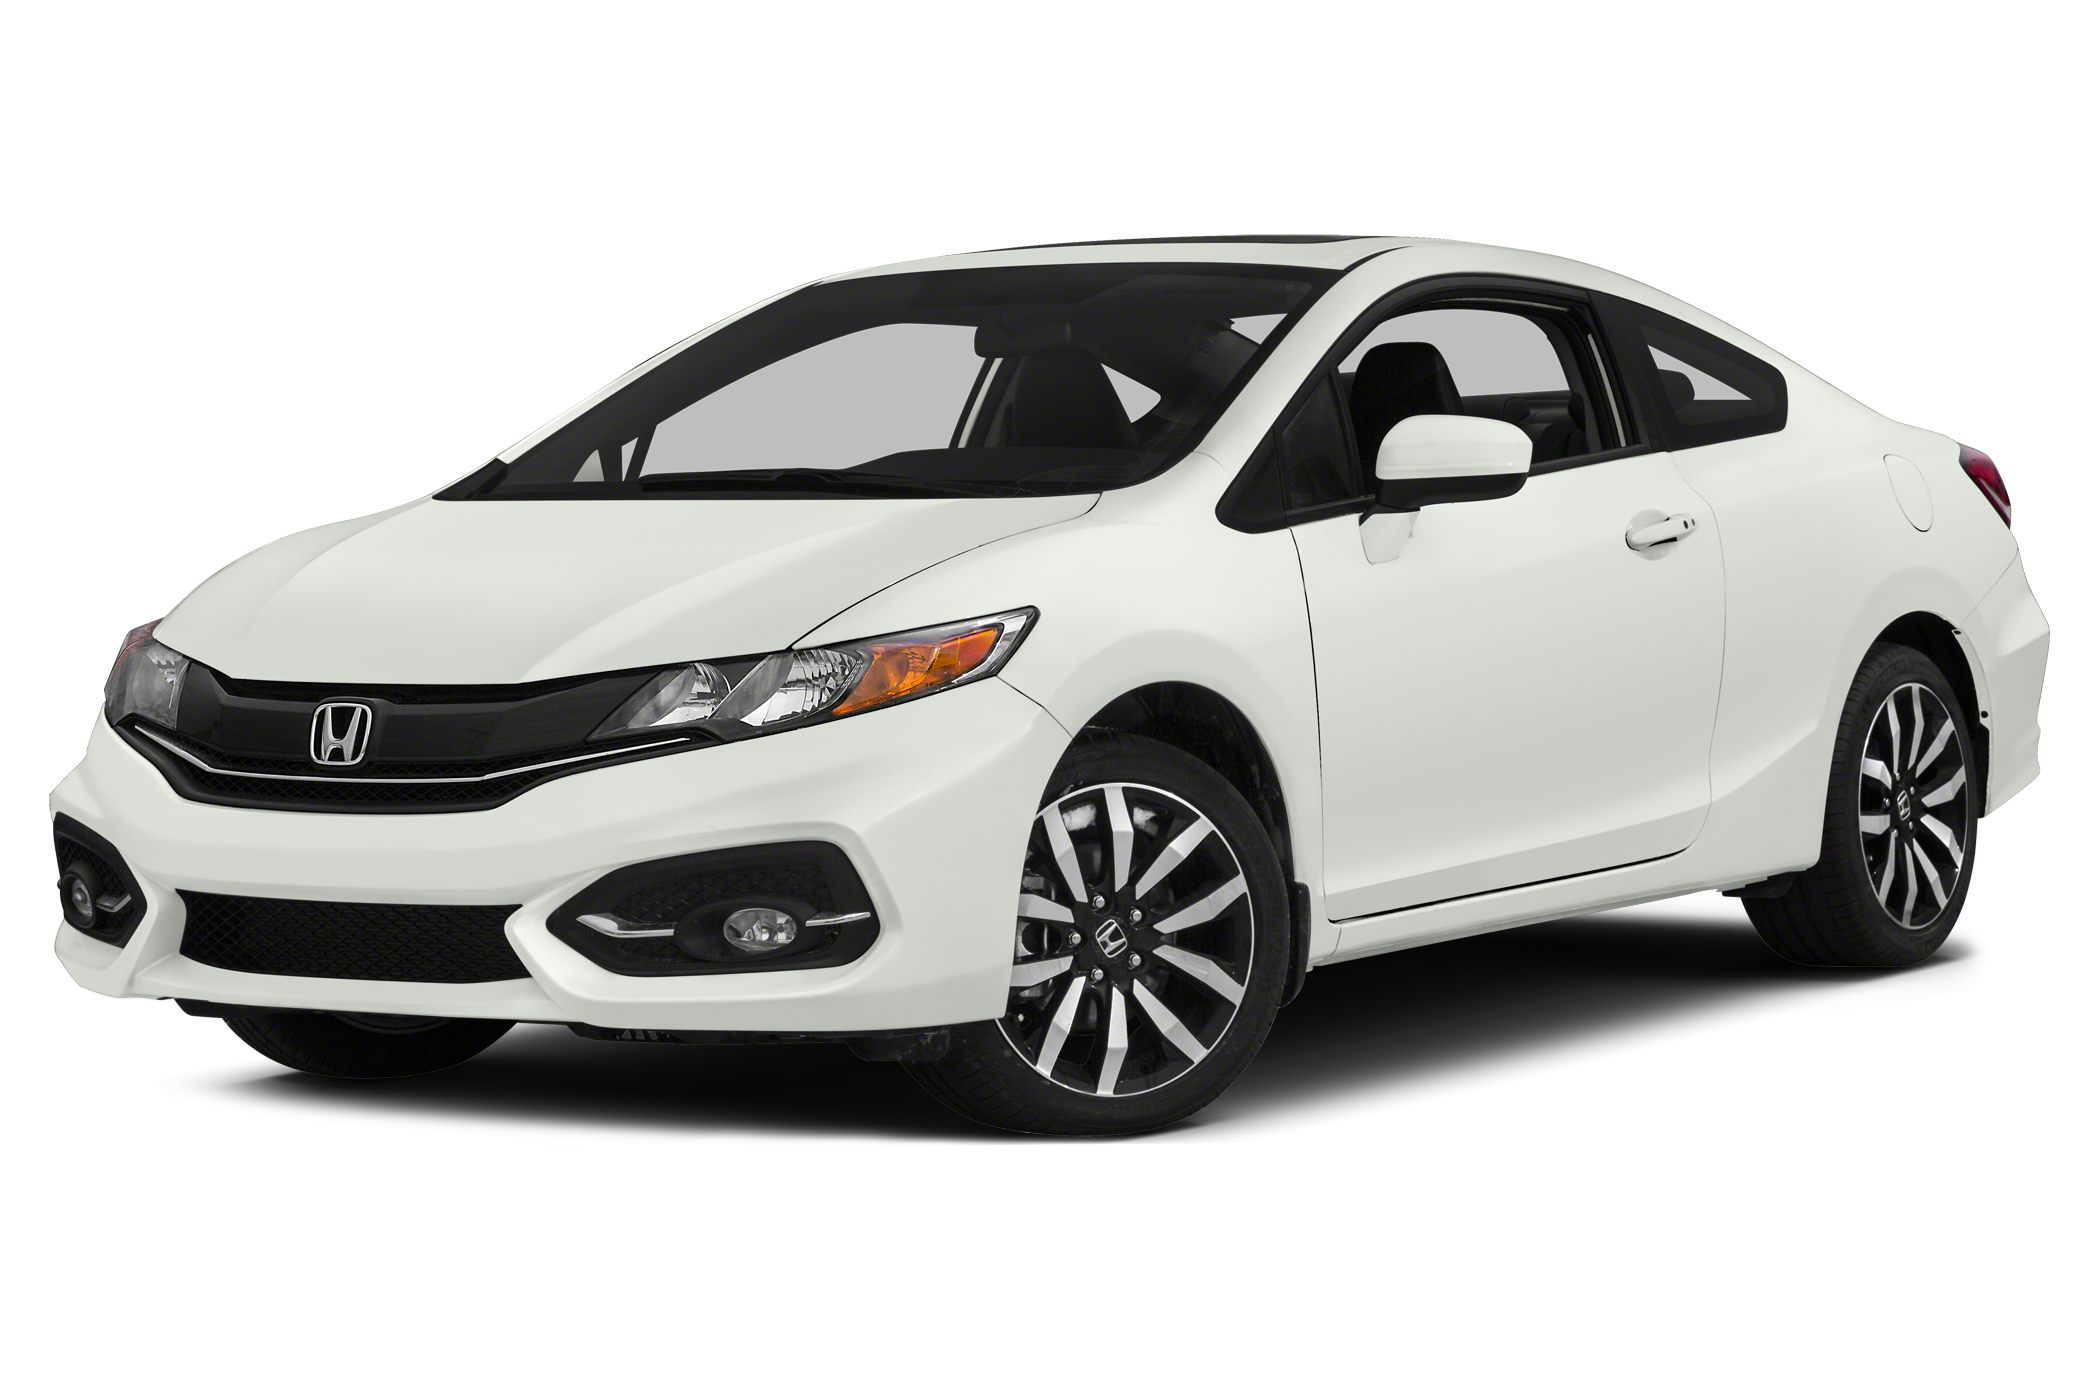 2015 Honda Civic EX-L Sedan for sale in Chicago for $25,160 with 6 miles.